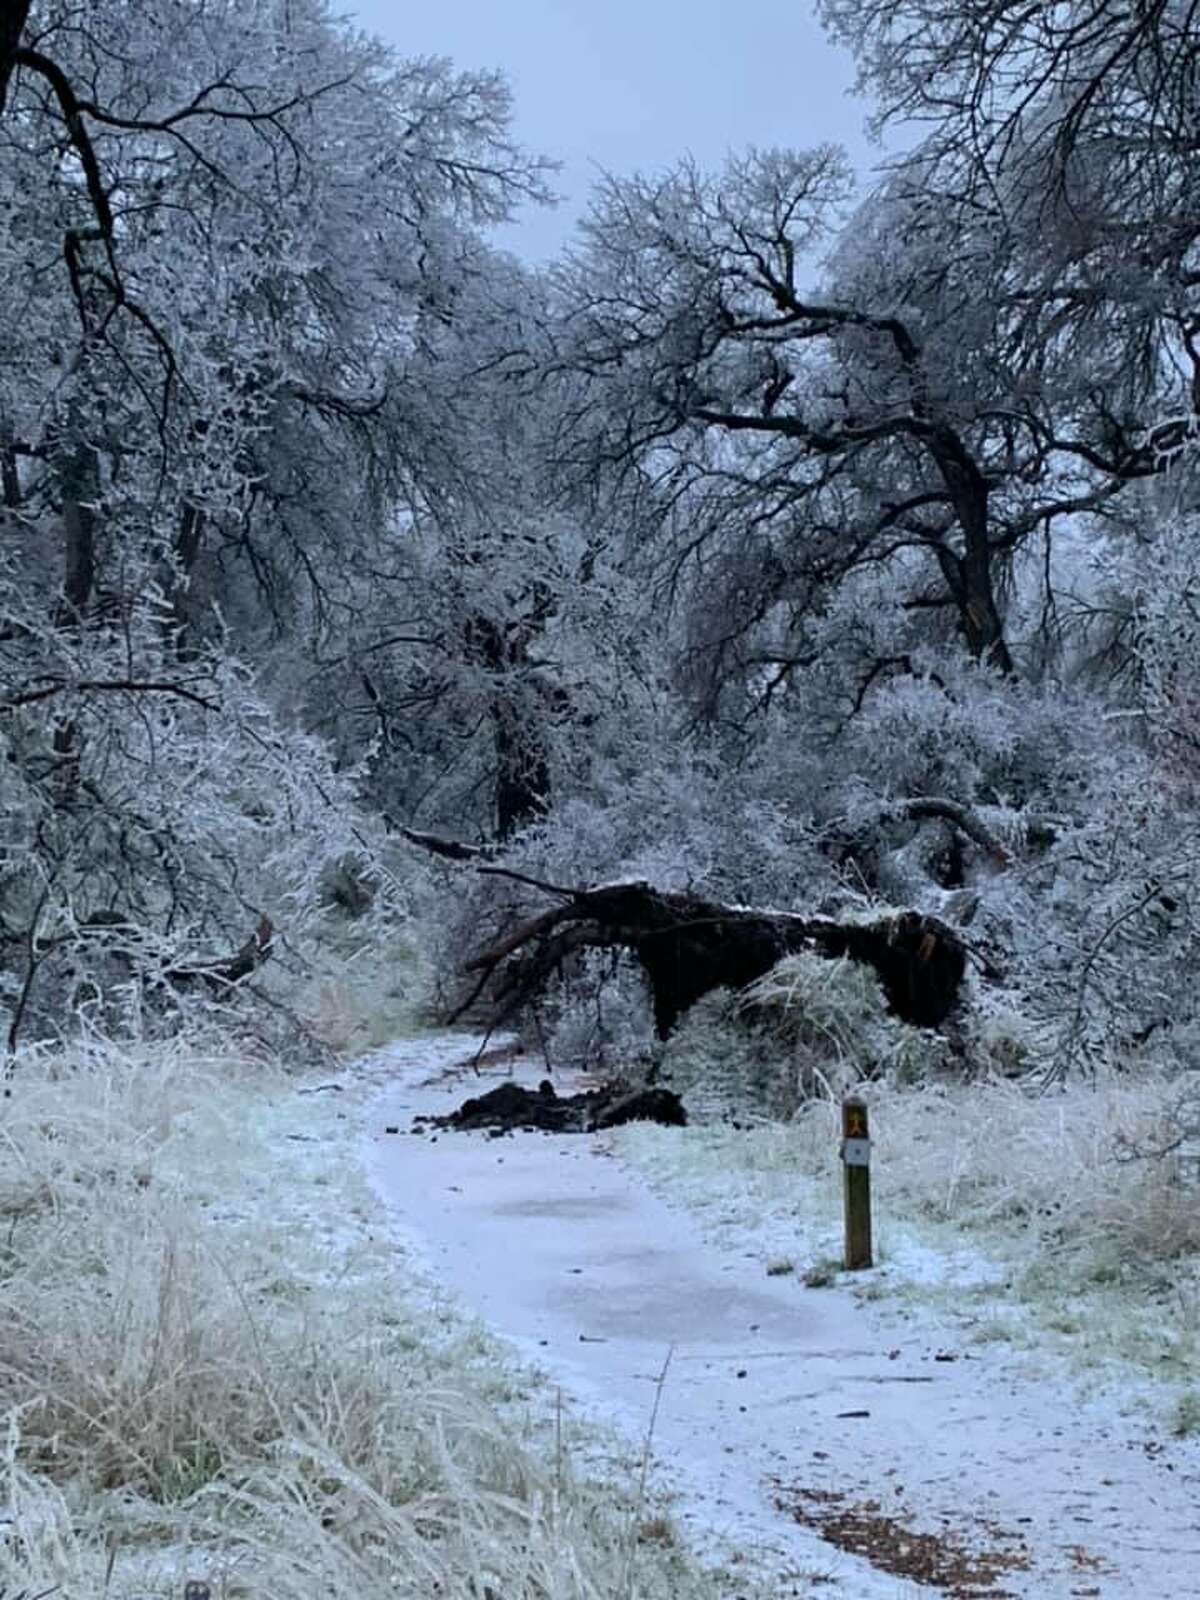 On Friday, Enchanted Rock announced it will be closed for the day on its Facebook account, writing the ice accumulations have made conditions in the park hazardous for visitors.